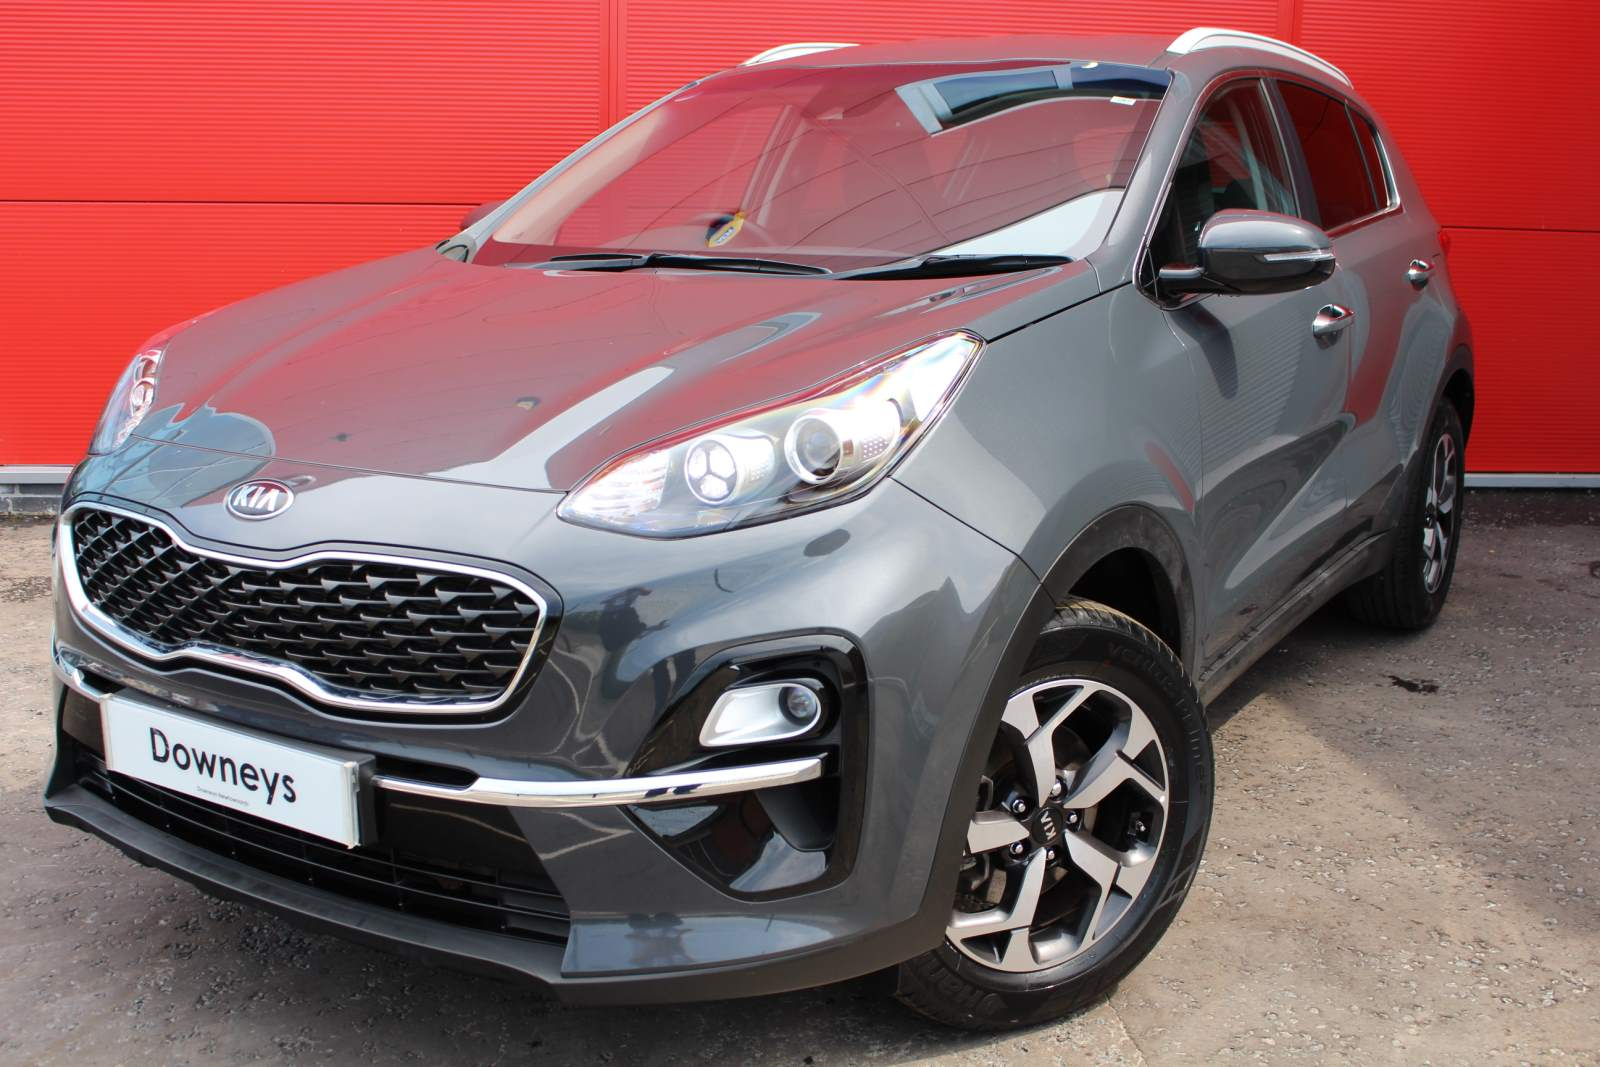 Kia SPORTAGE 2 1.6 GDi ISG FULL KIA WARRANTY UNTIL APRIL 2026